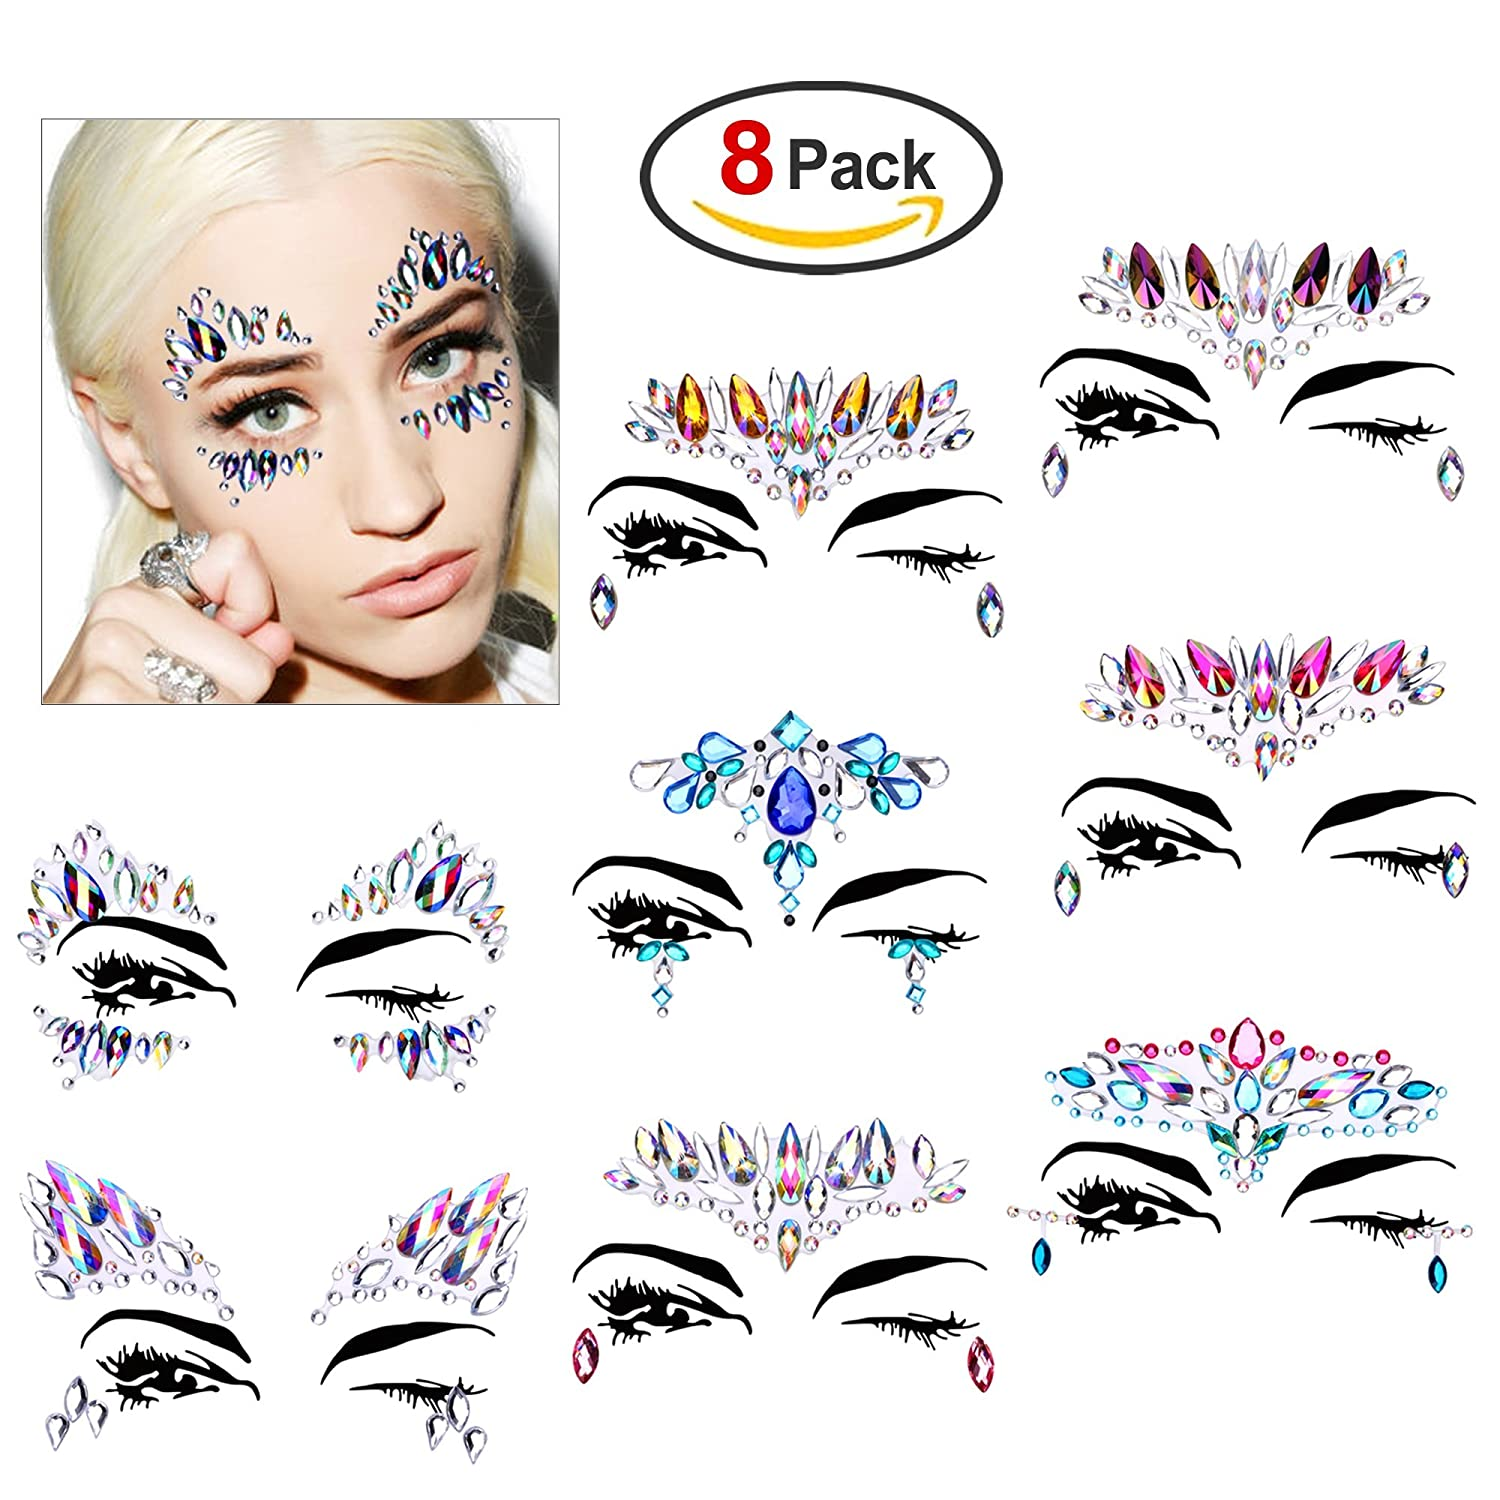 Face Gems, Konsait 8 Pack Face Gem Jewels Makeup Stickers Face Temporary Tattoo Glitter Rhinestone Adhesive for Festival Rave Party Bindi Eyes Face Body Forehead Decorations